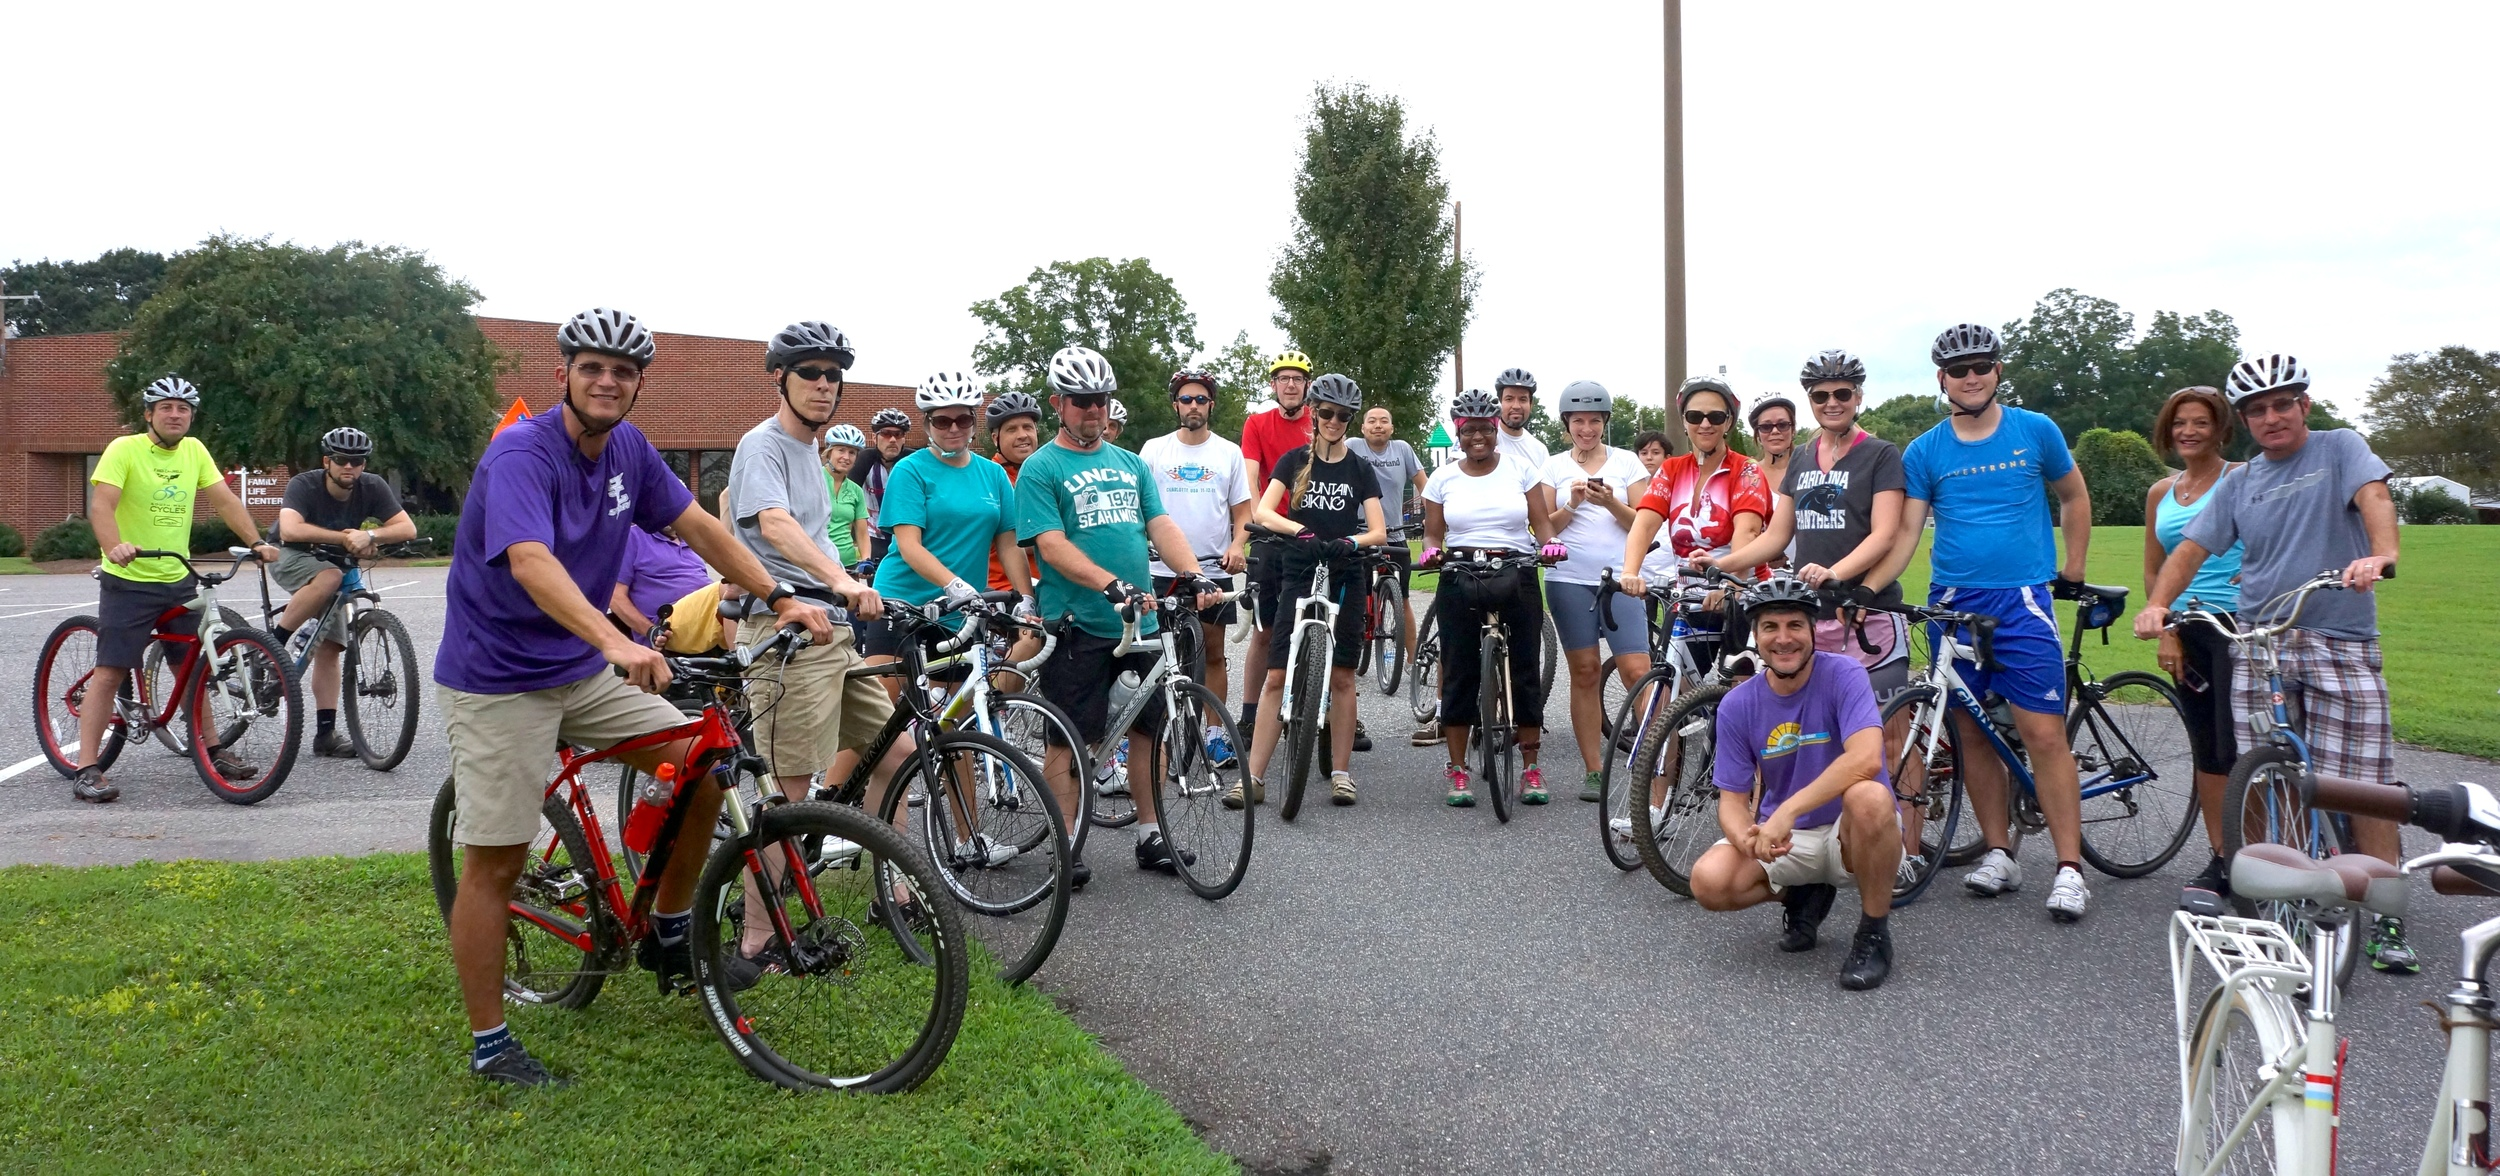 Two Rivers Ride project kickoff bike tour